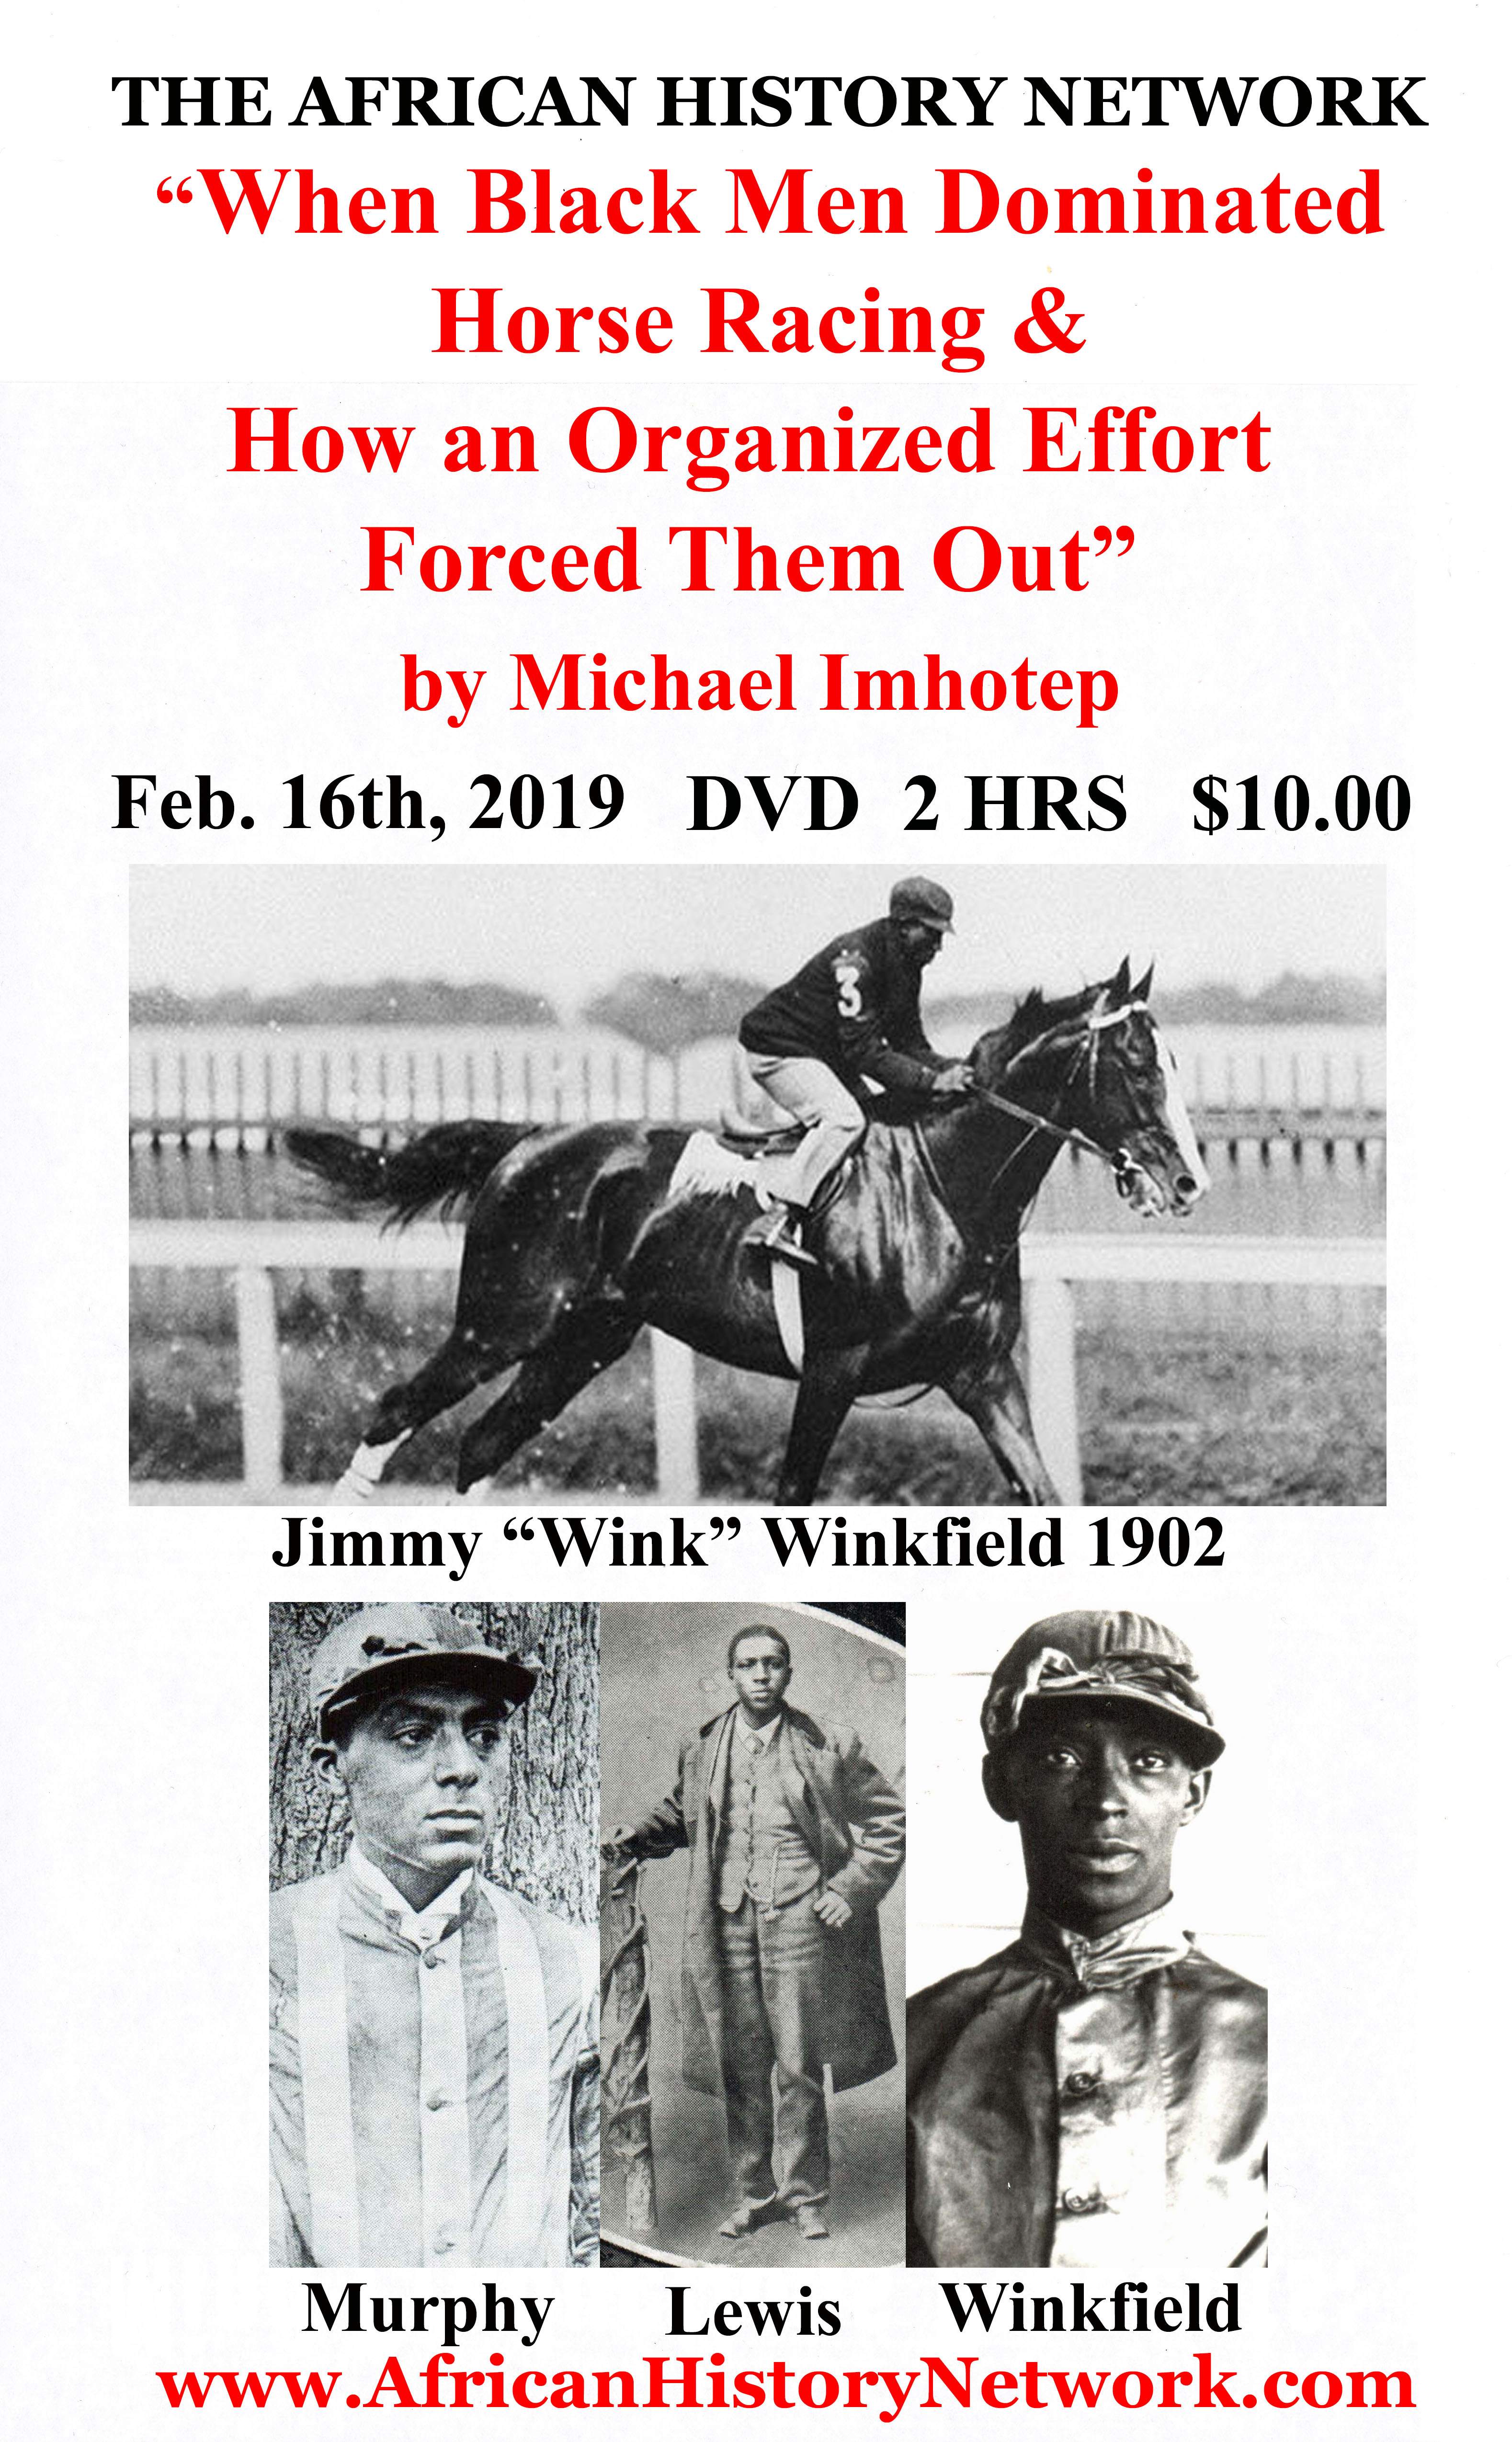 Michael_Imhotep_-_When_Black_Men_Dominated_Horse_Racing_2-16-19_-_DVD_Front_Insert_Label